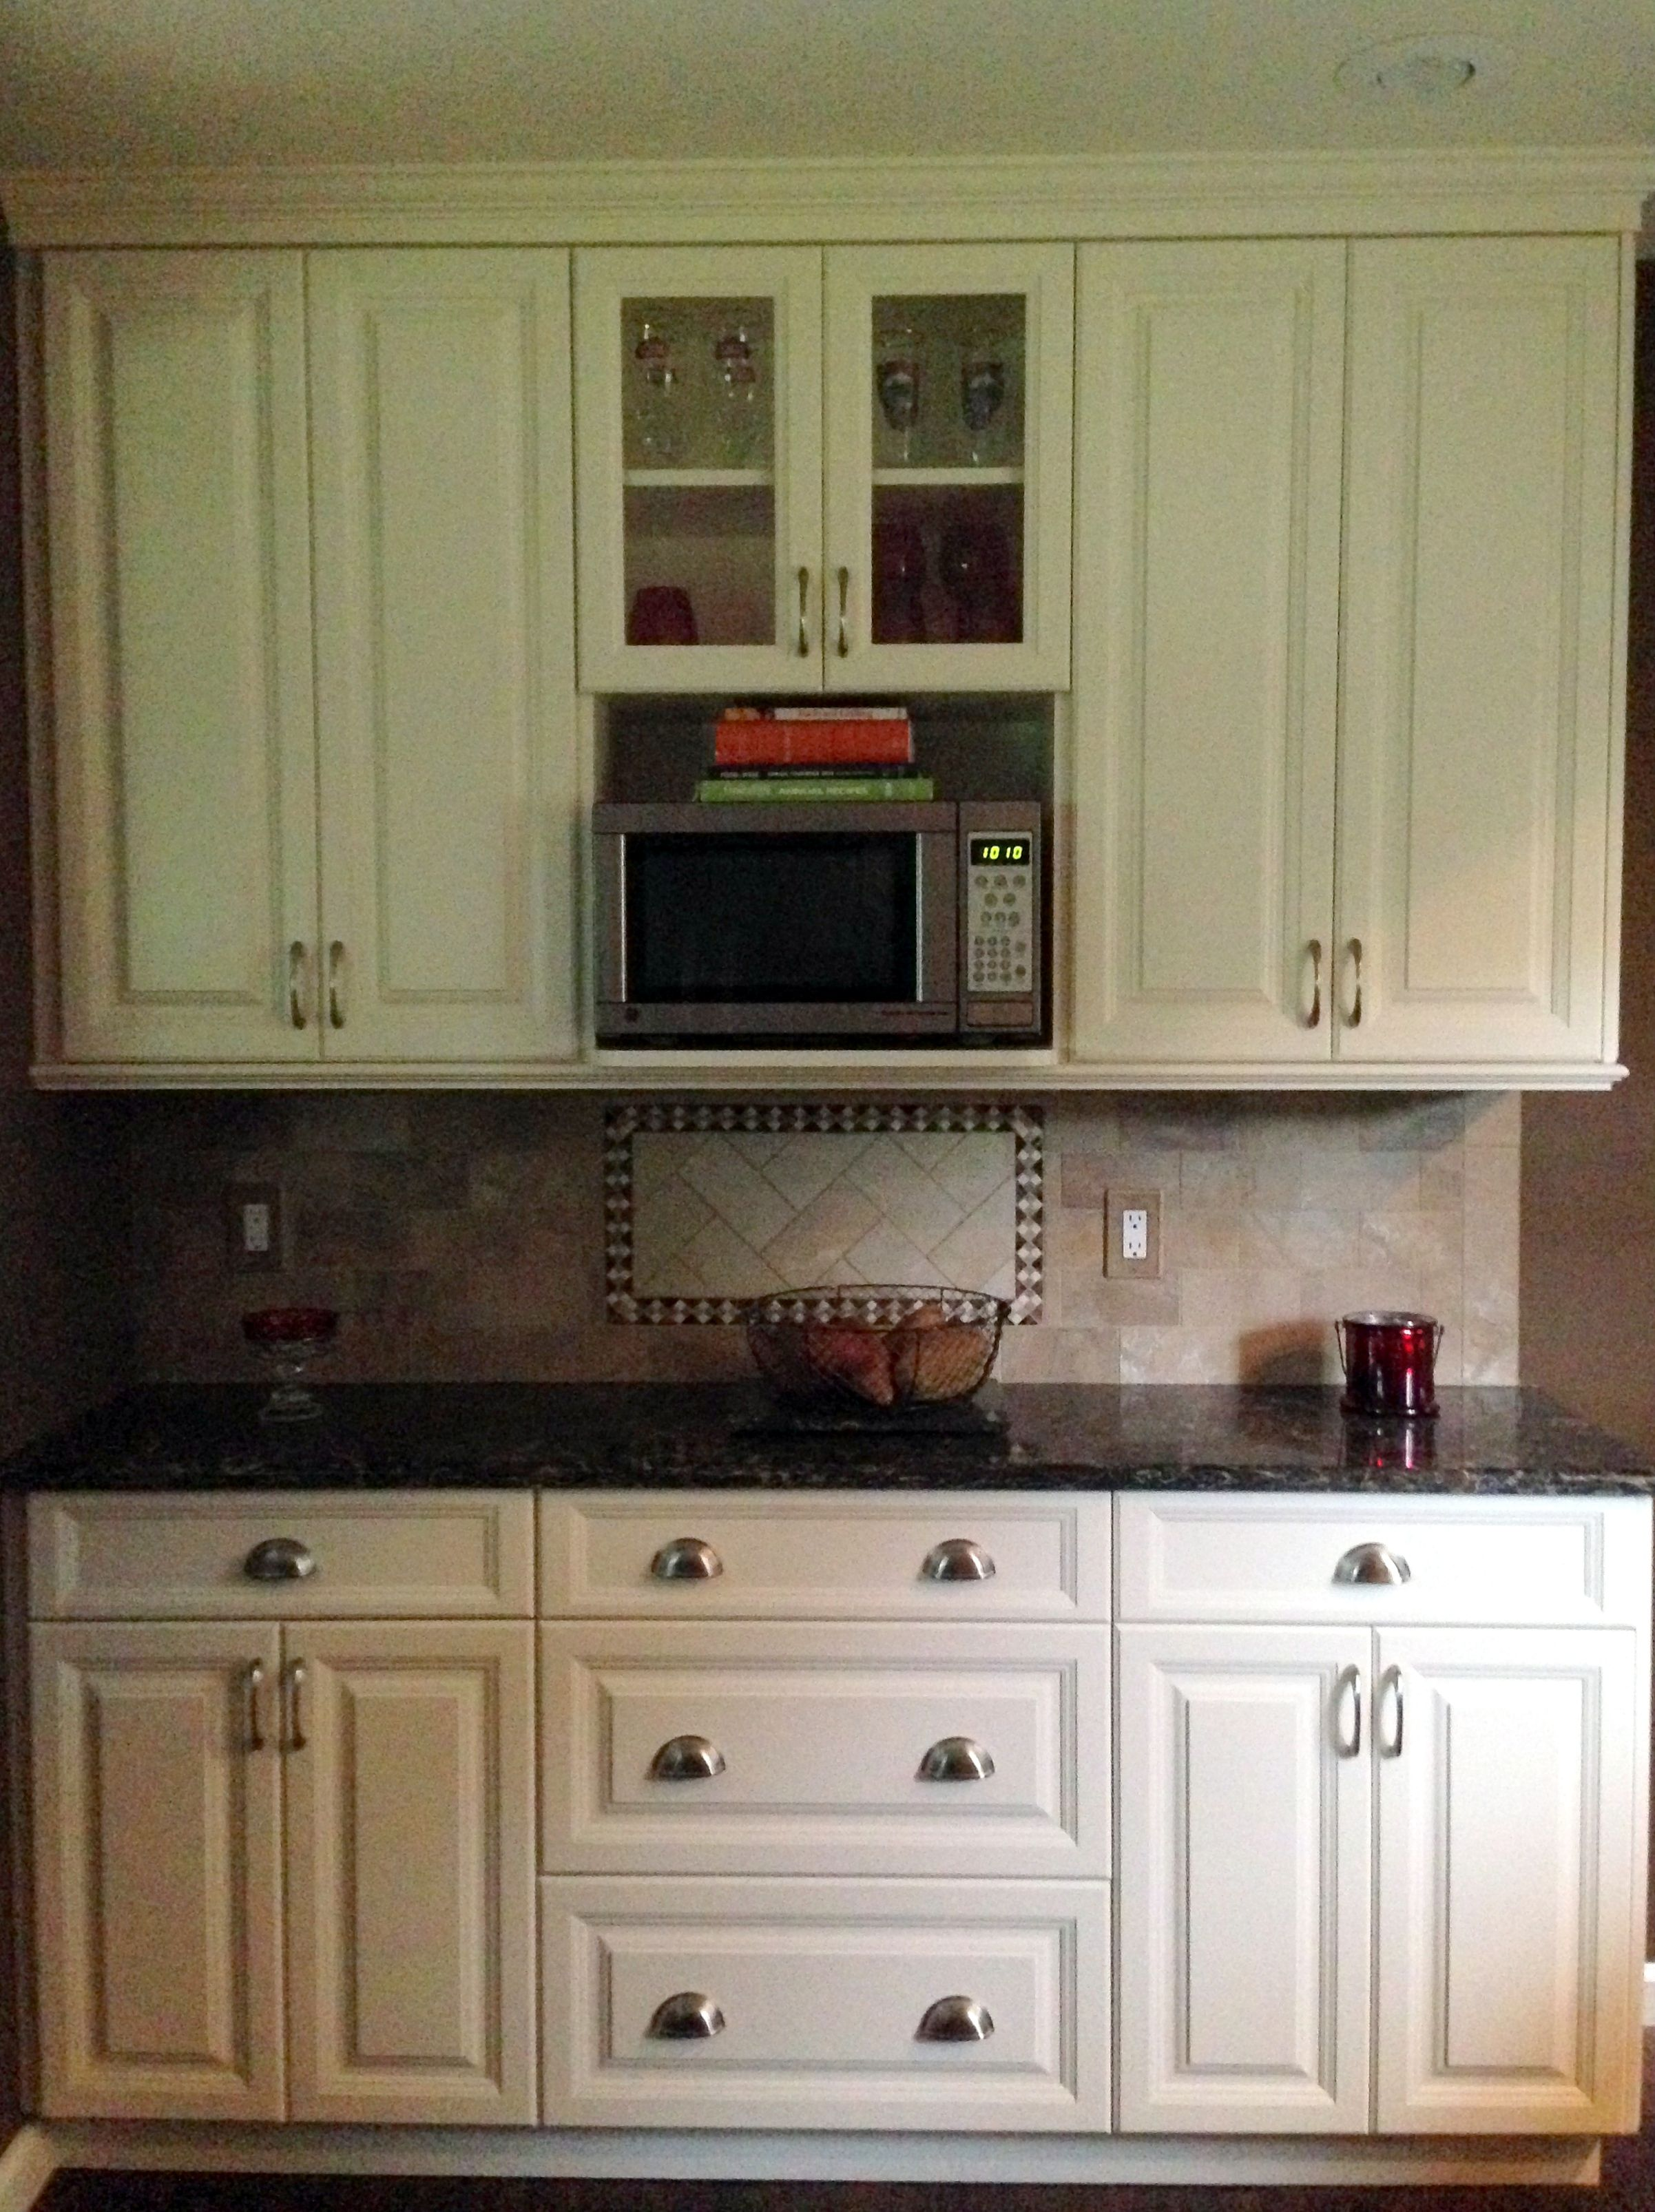 White Millbrook Kitchen With Laneshaw Quartz Countertops (1 Of 10)